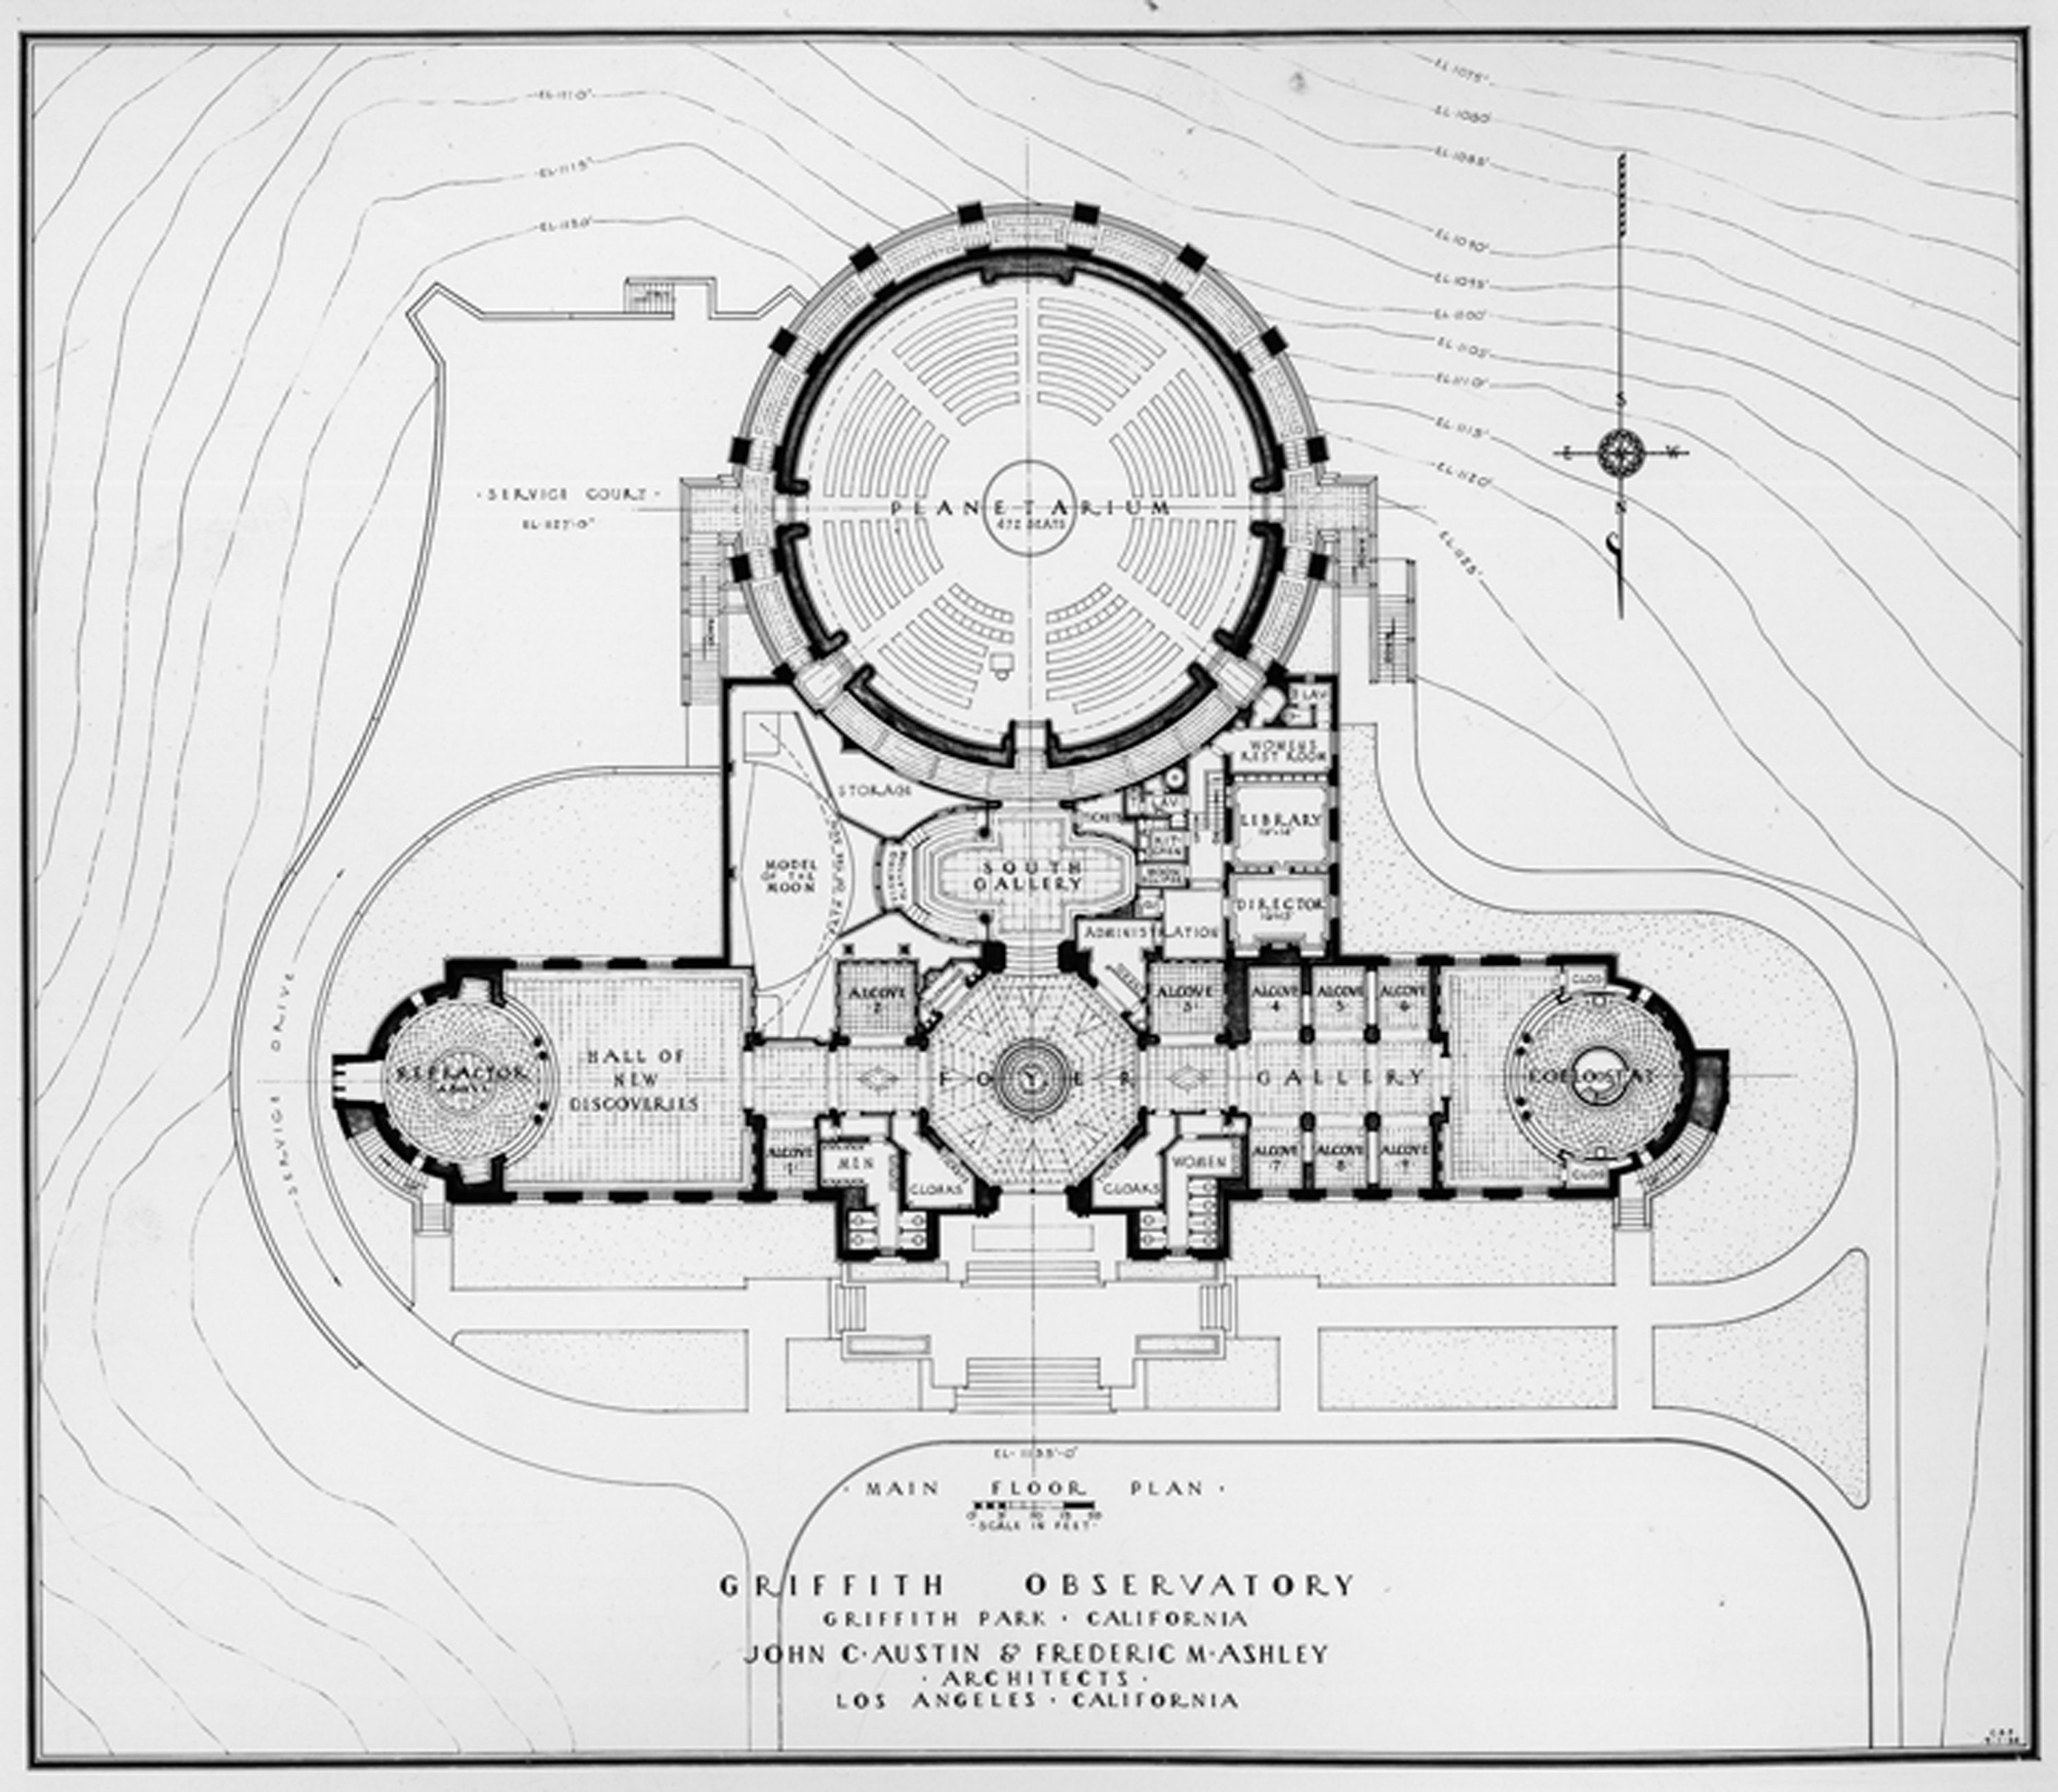 Floor plan of Griffith Observatory in 1933.